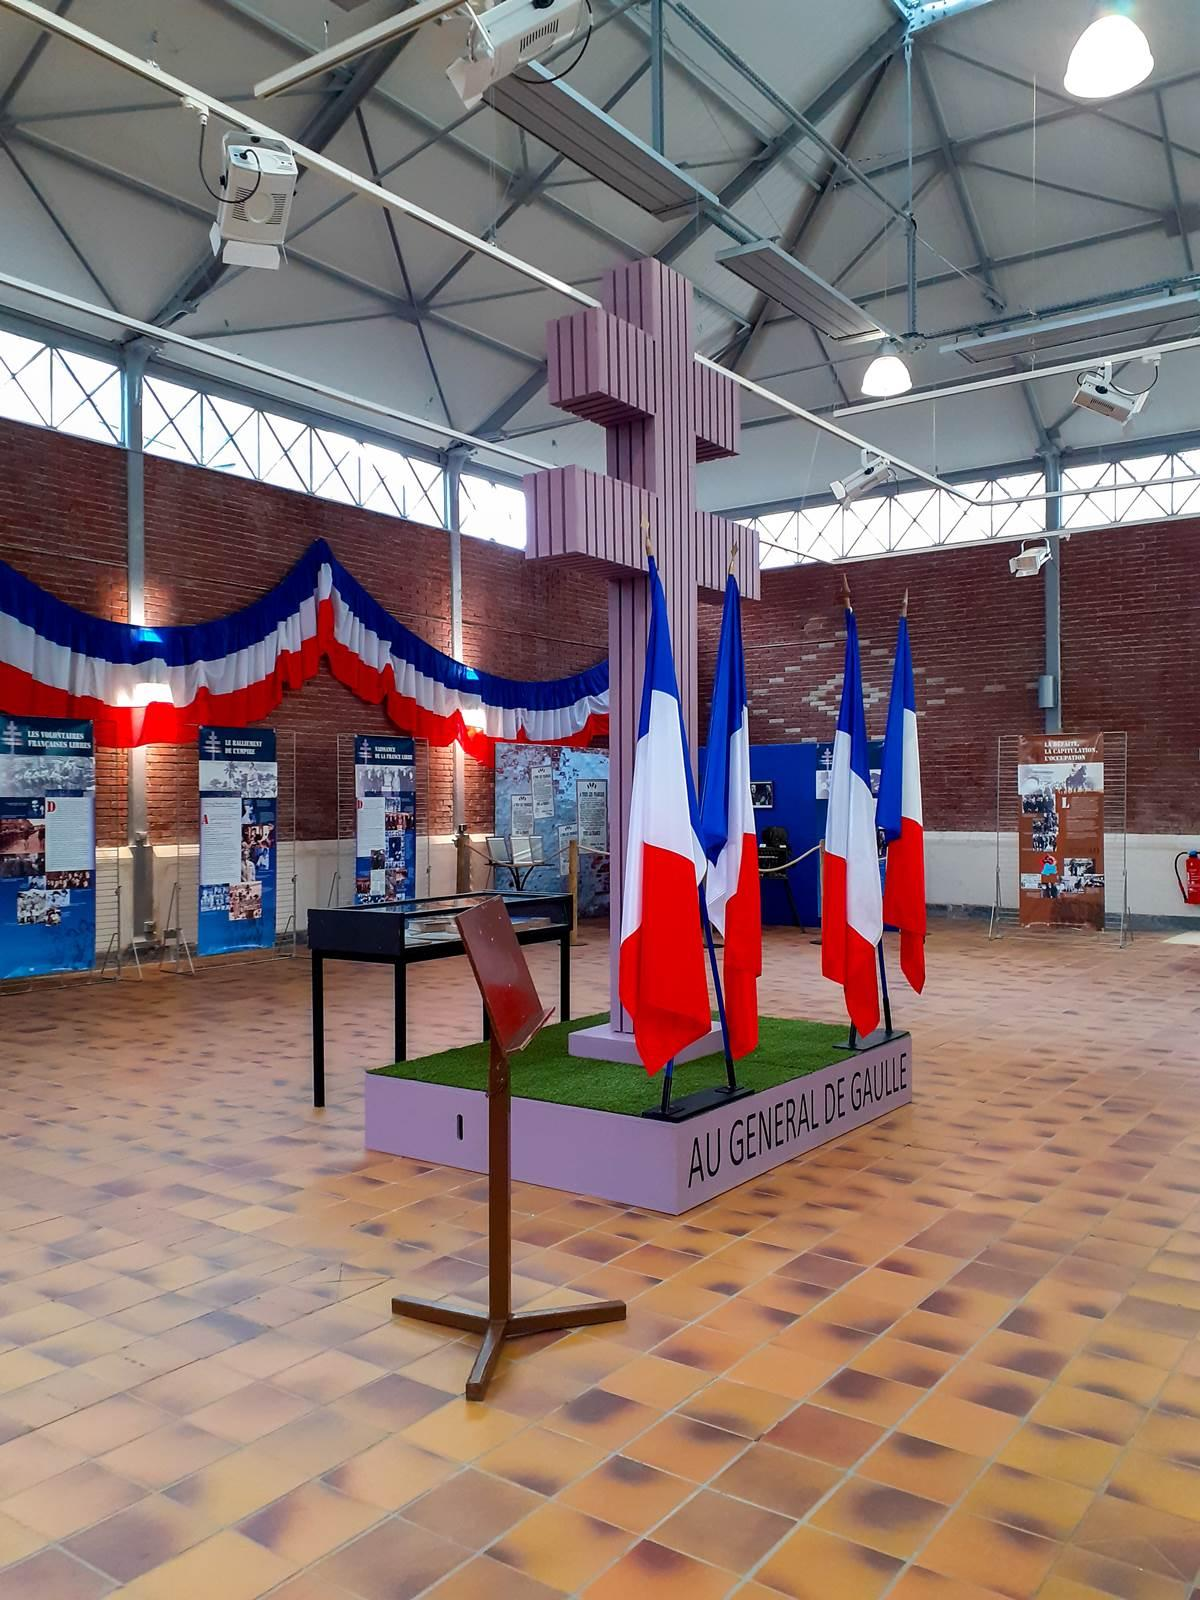 Charles de gaulles exposition chateaubriant001